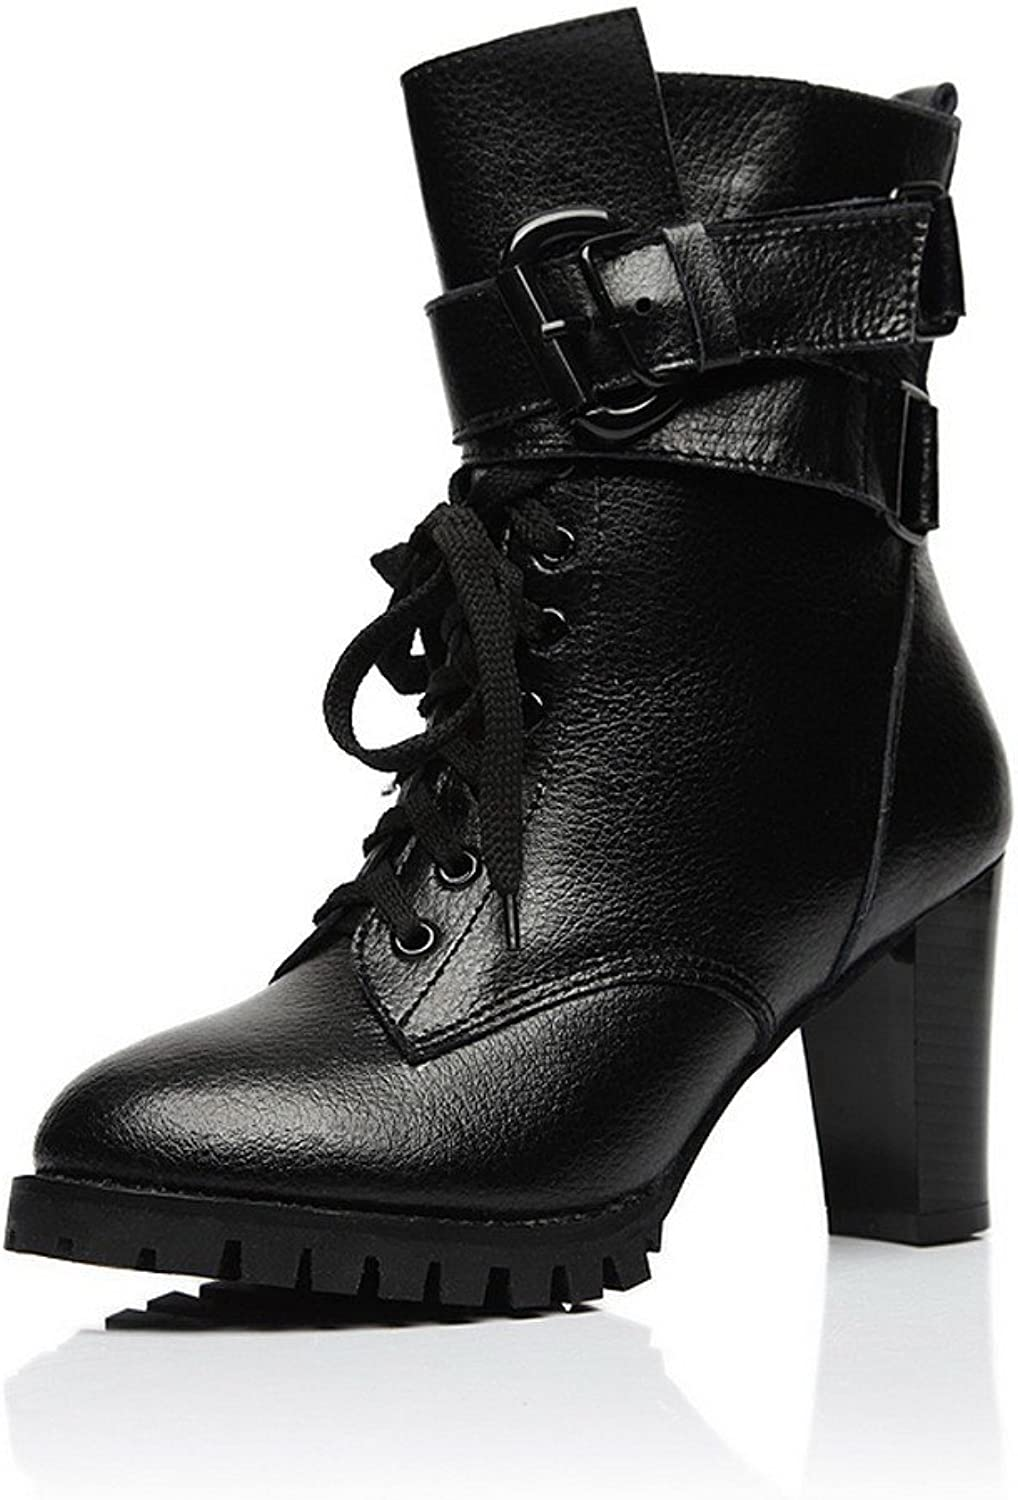 QueenFashion Women's Glitter Solid Ankle Boots with Zipper and Metal Buckles